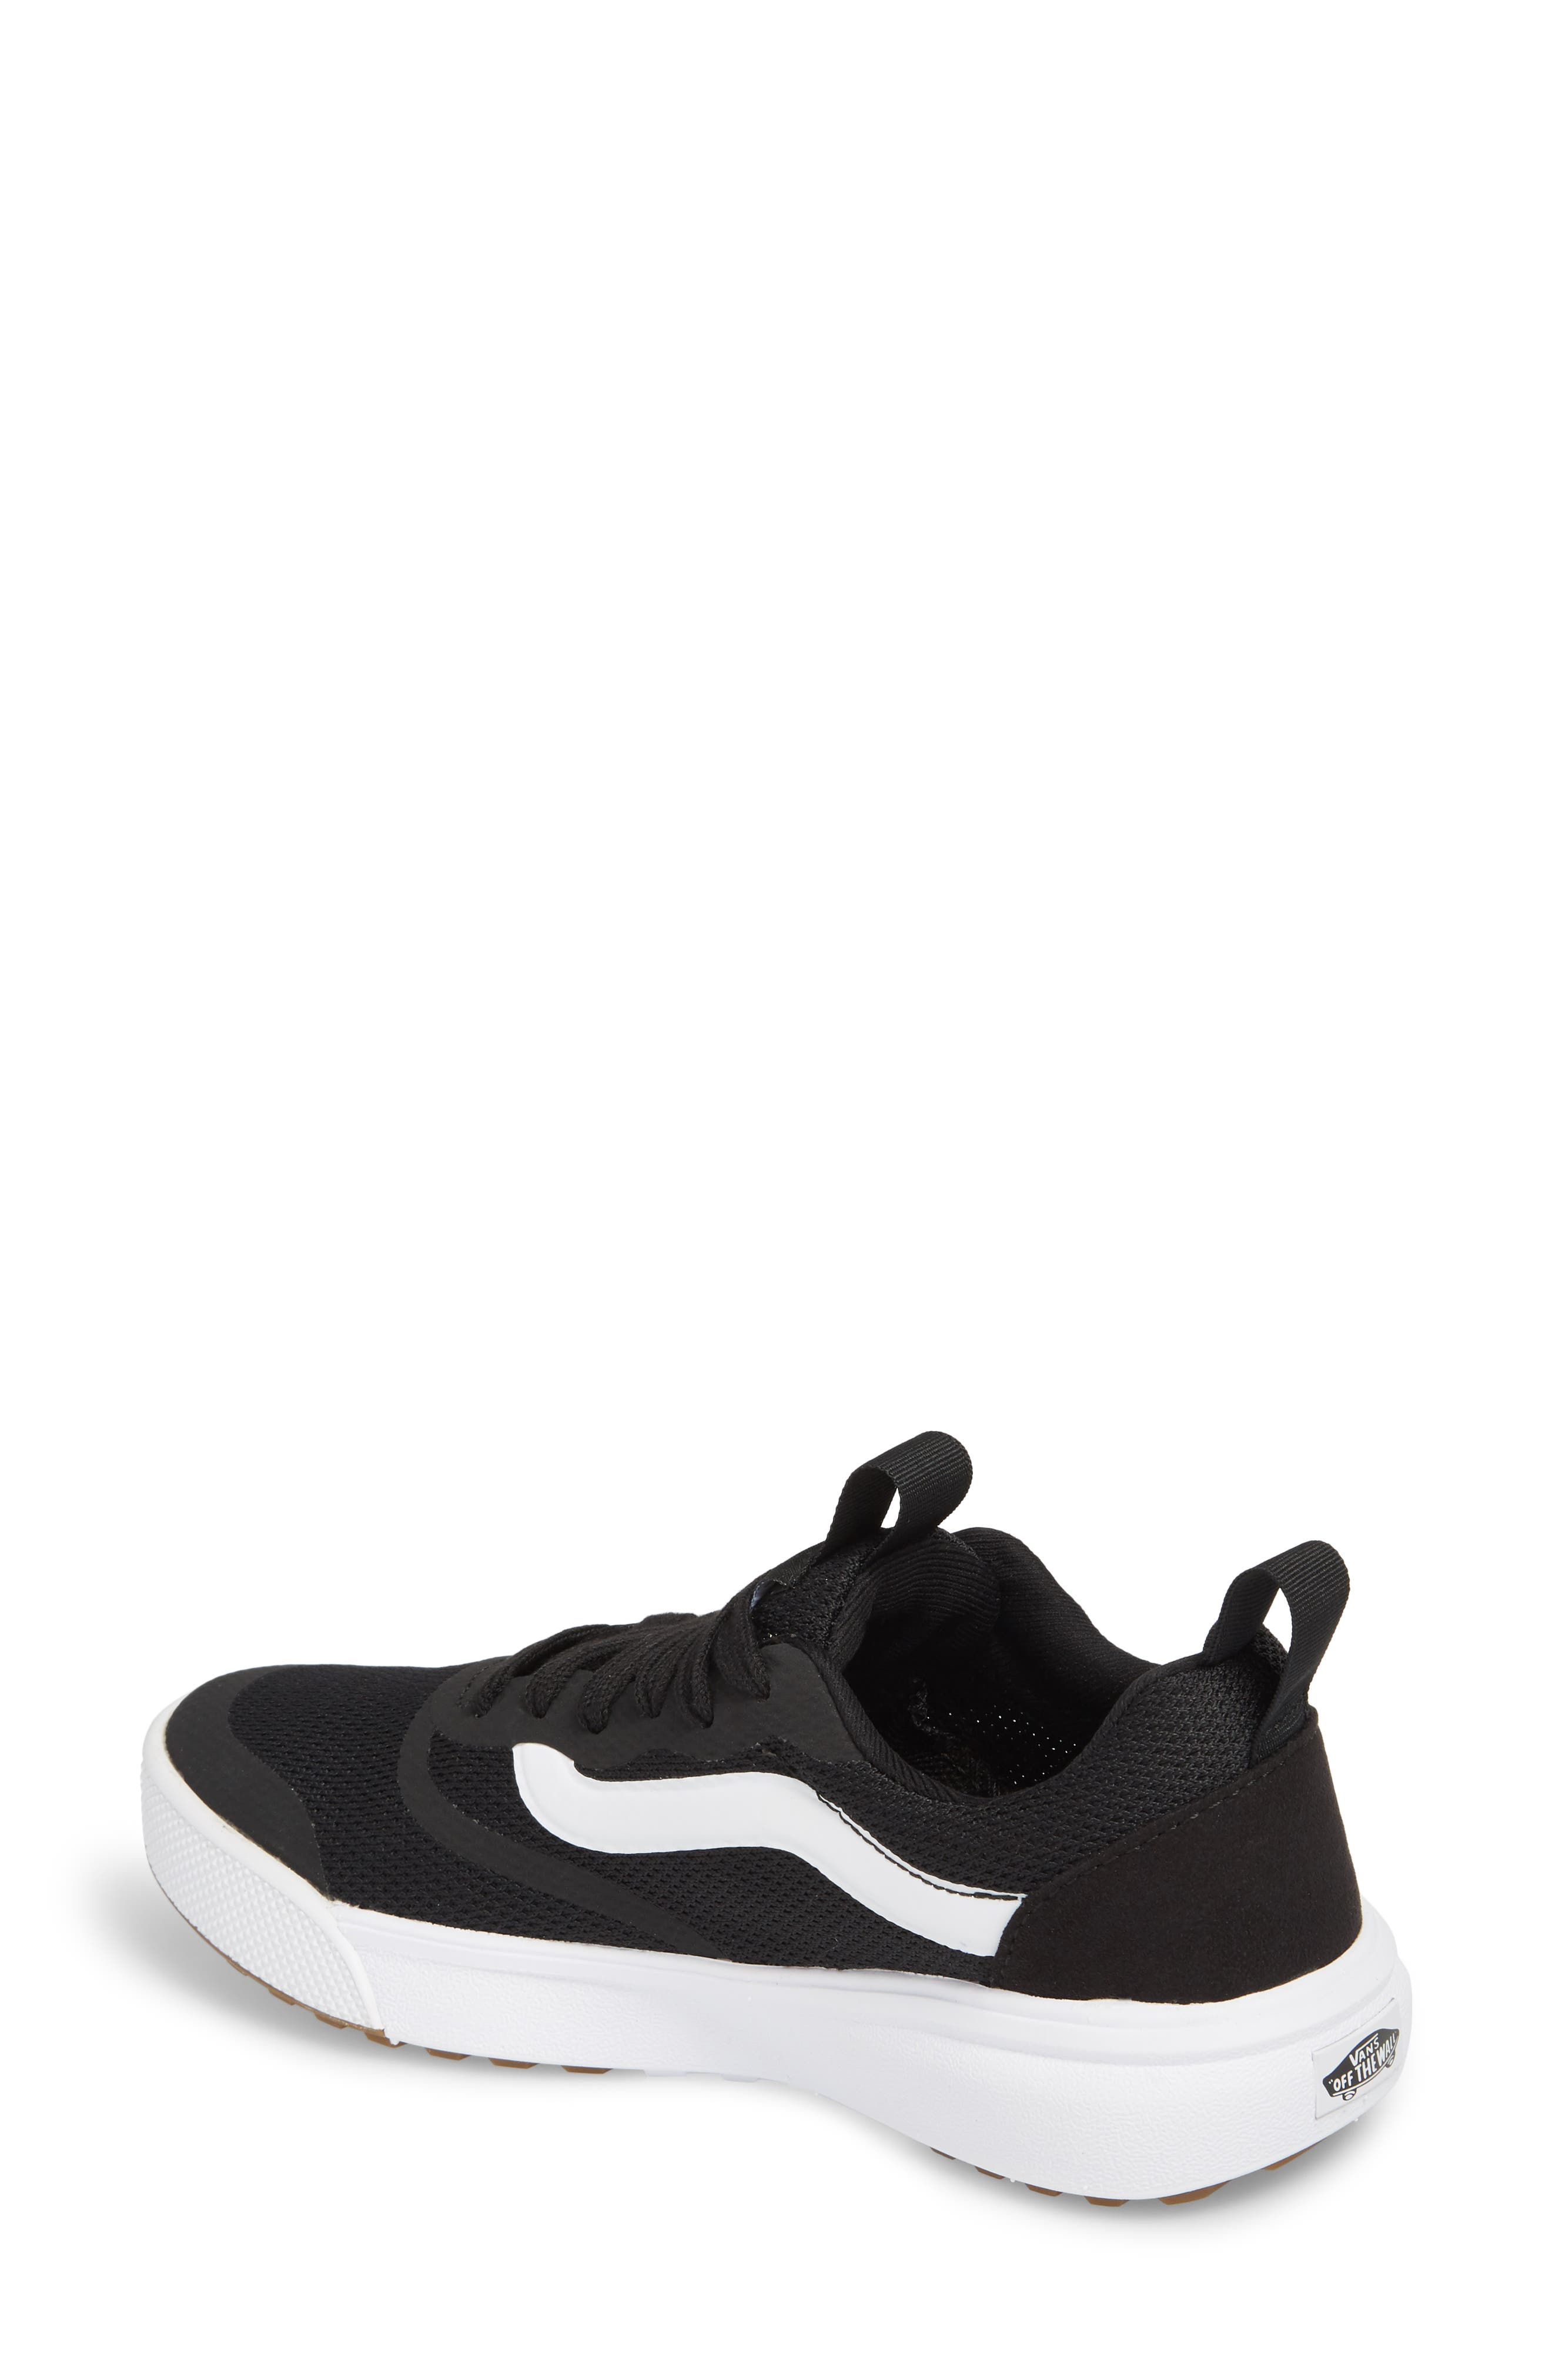 UltraRange Rapidweld Sneaker,                             Alternate thumbnail 2, color,                             BLACK/ BLACK/ WHITE